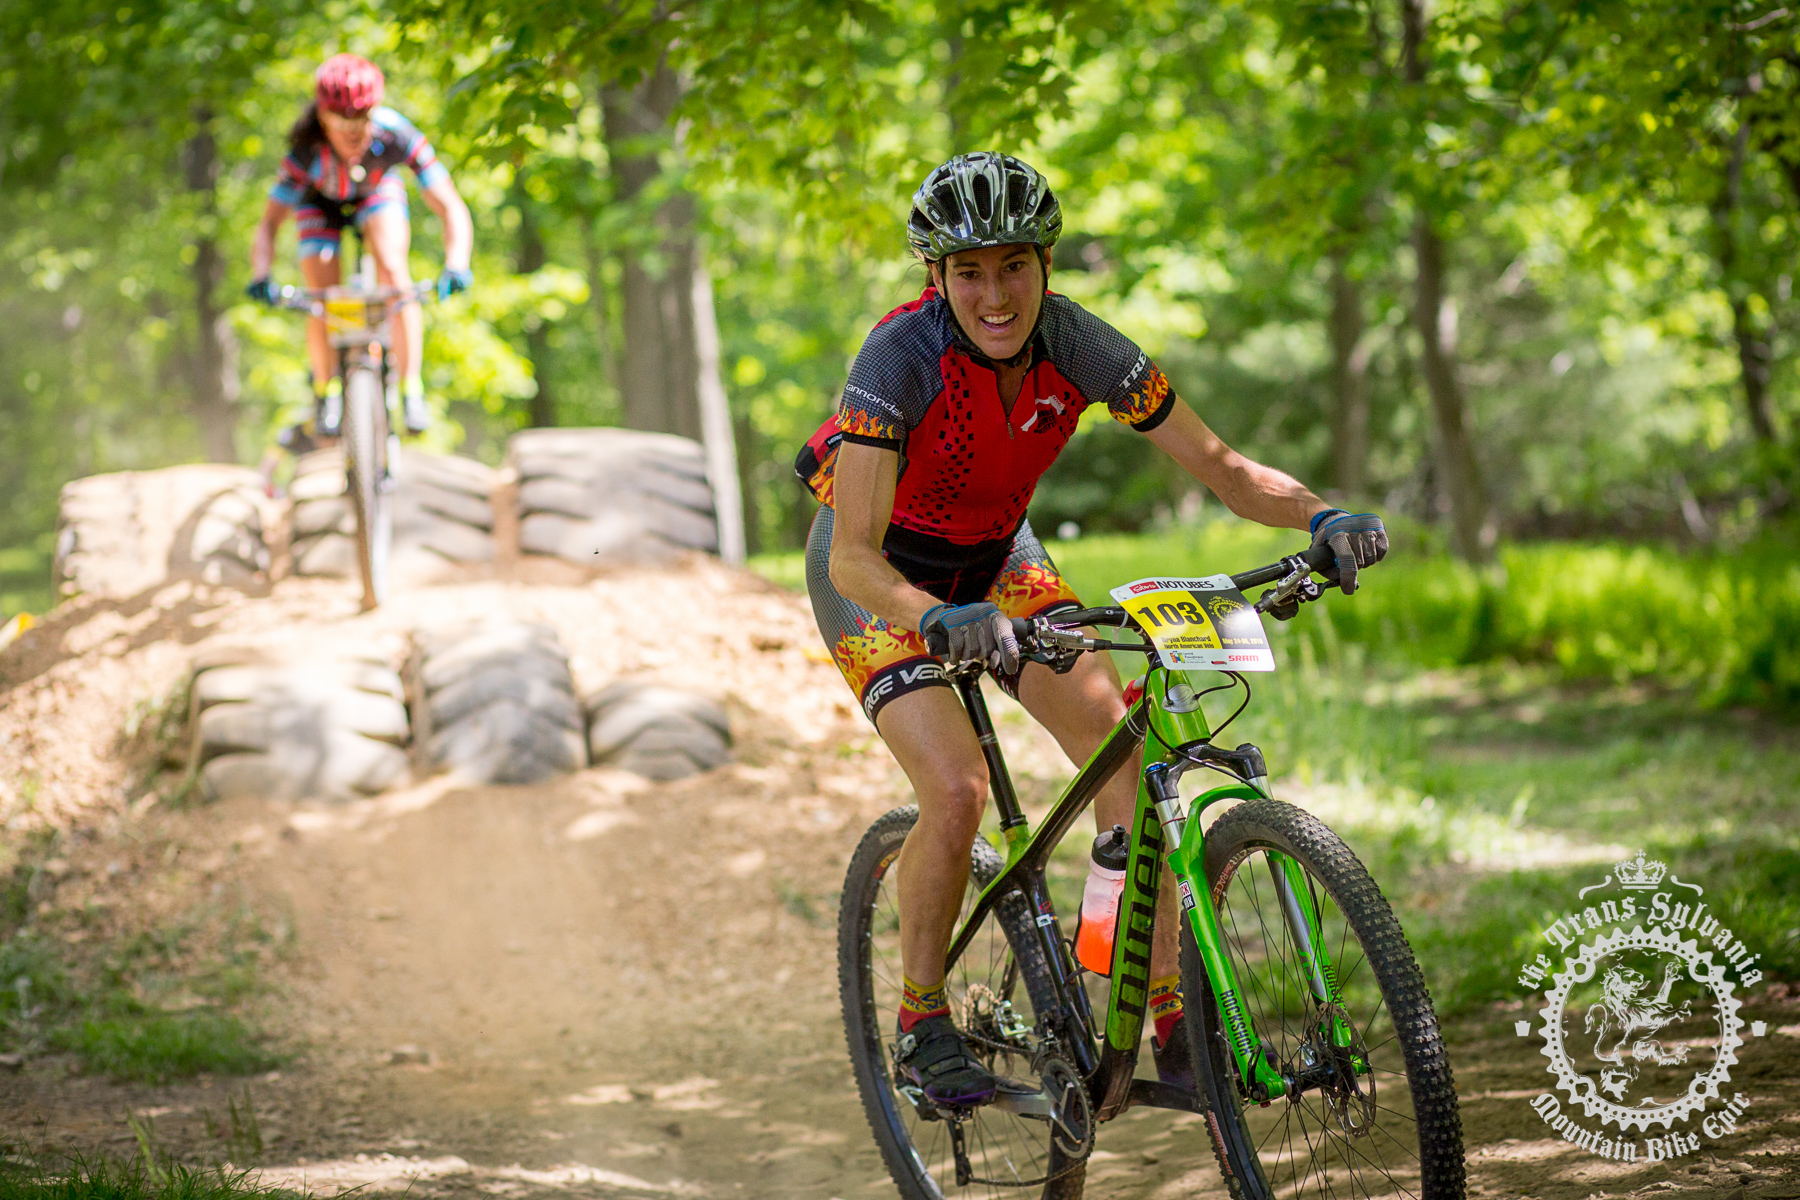 Bryna Blanchard (North American Velo) bakes her favorite bread ahead of big races like the NoTubes Trans-Sylvania Epic. Photo by Trans-Sylvania Epic Media Team